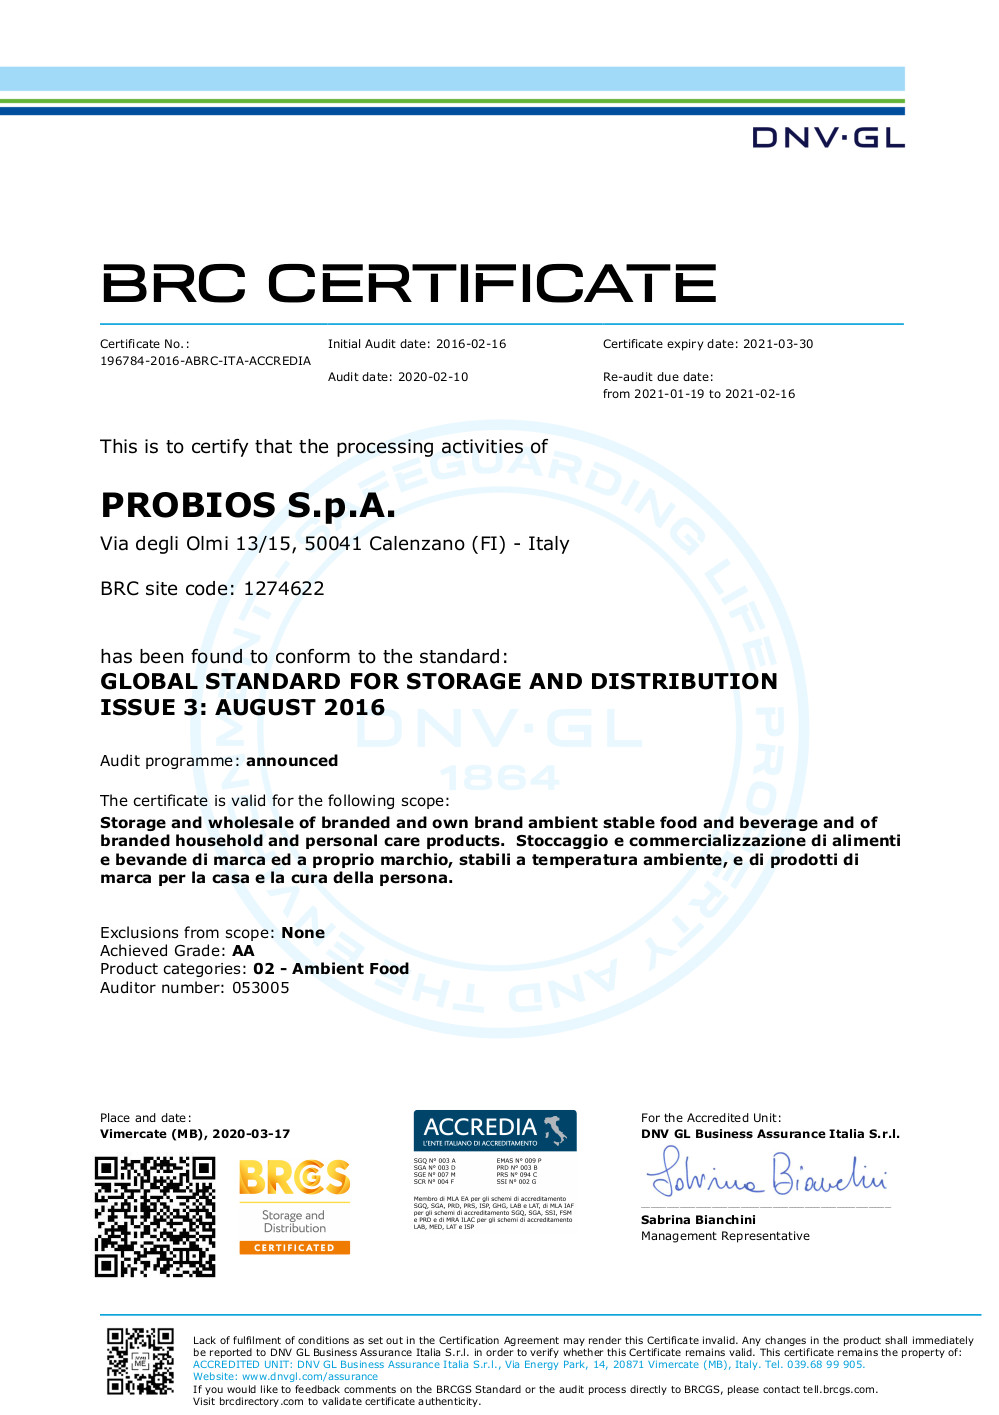 BRC Global Storage and Distribution – Probios